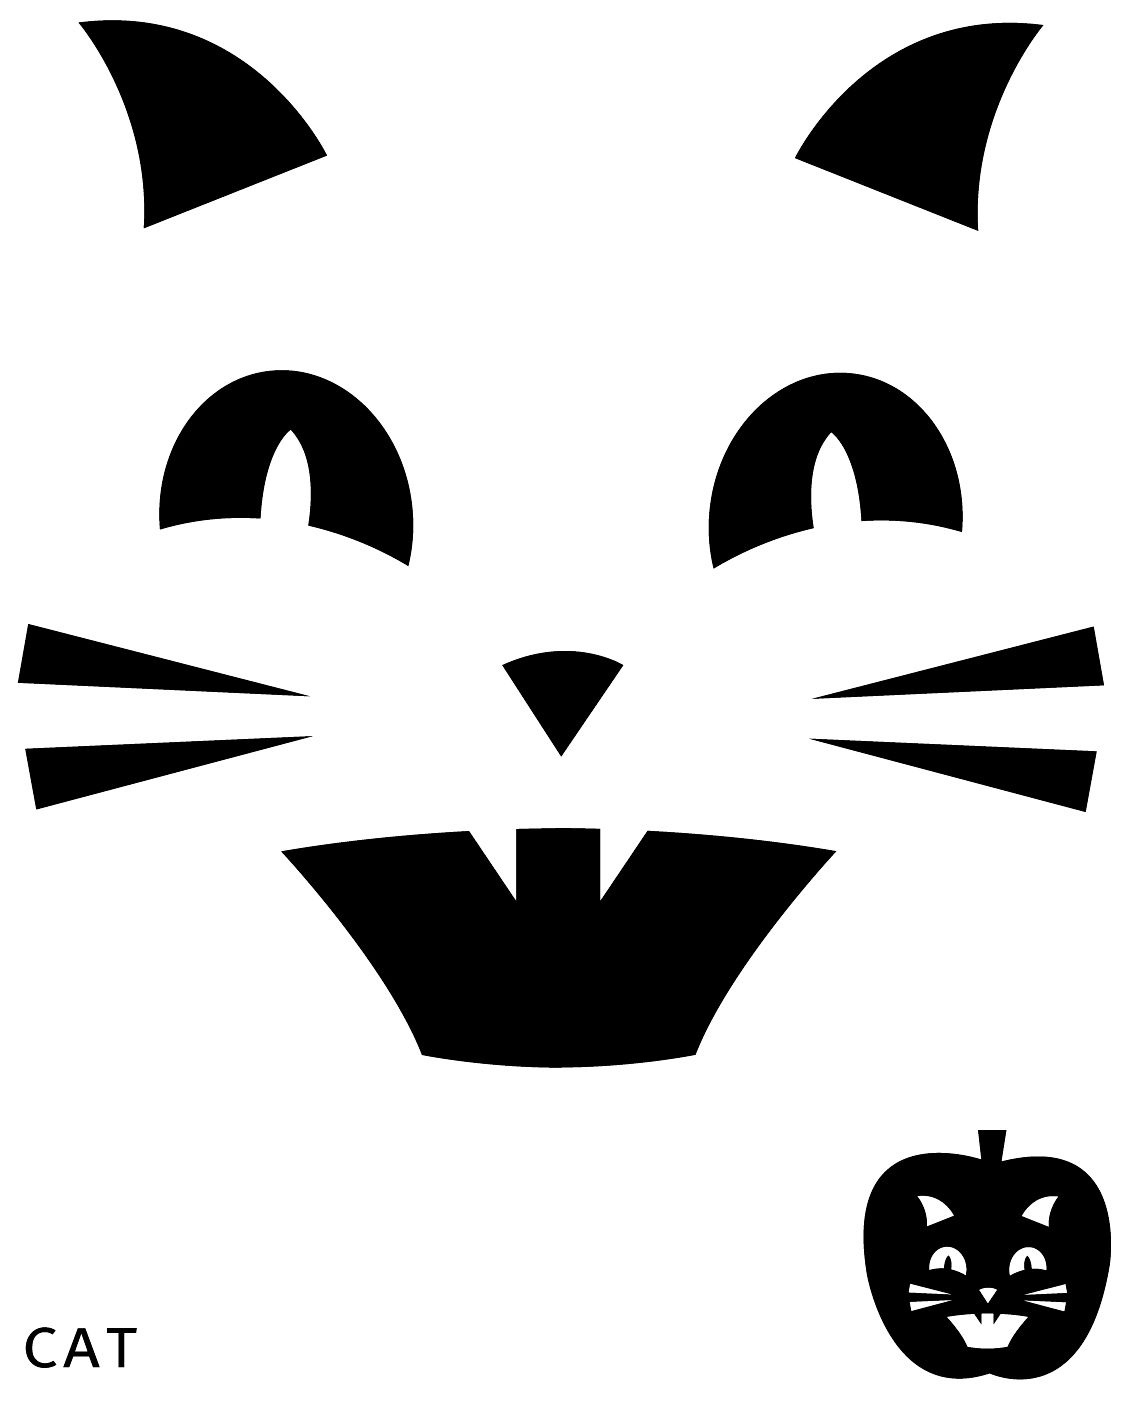 Cat Pumpkin Carving Template | Halloween | Halloween Pumpkins - Free Pumpkin Carving Templates Printable